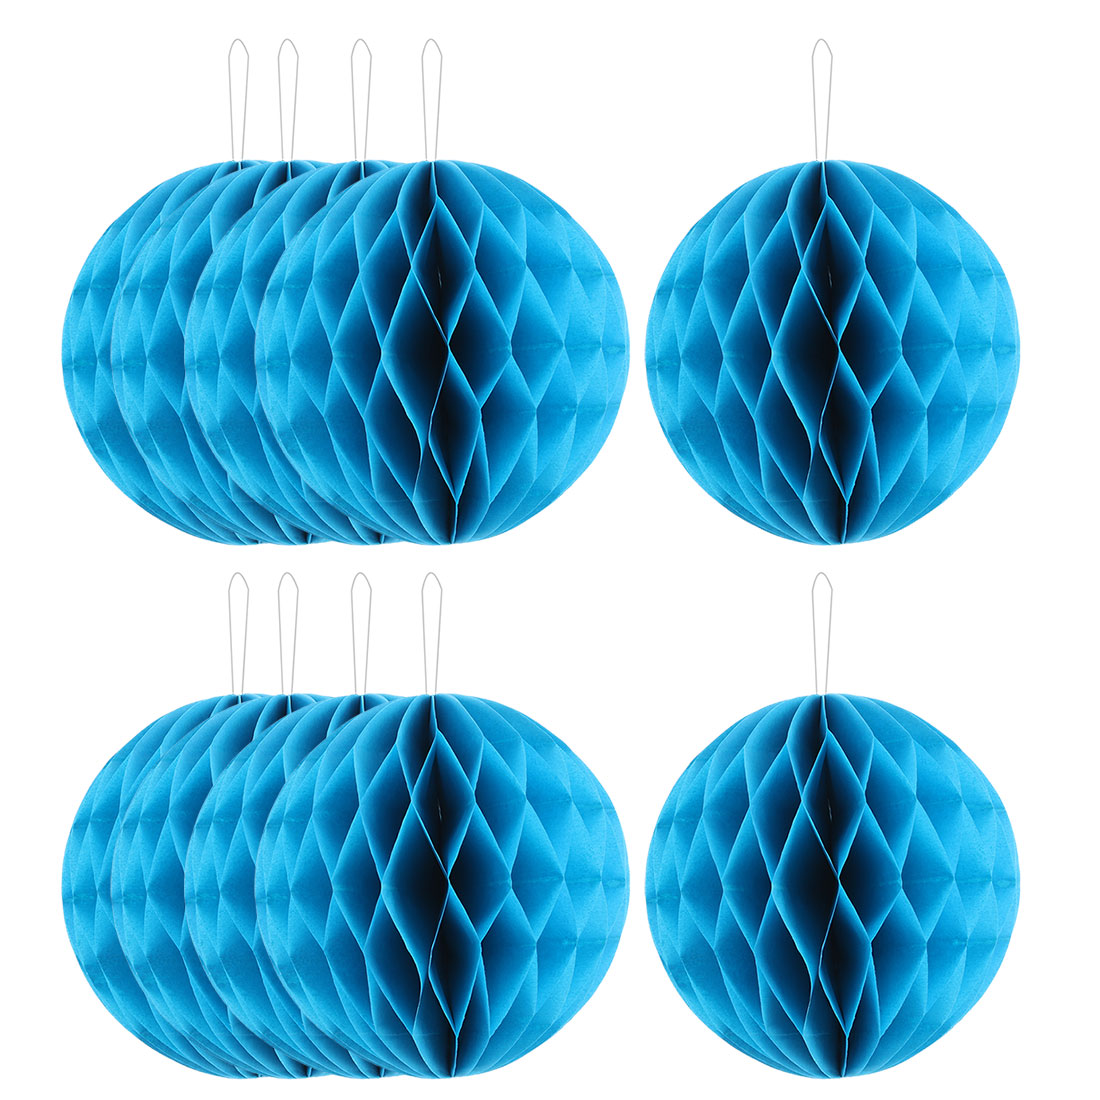 Festival Paper Handmade DIY Hanging Decor Honeycomb Ball Lantern Blue 8 Inches 10pcs